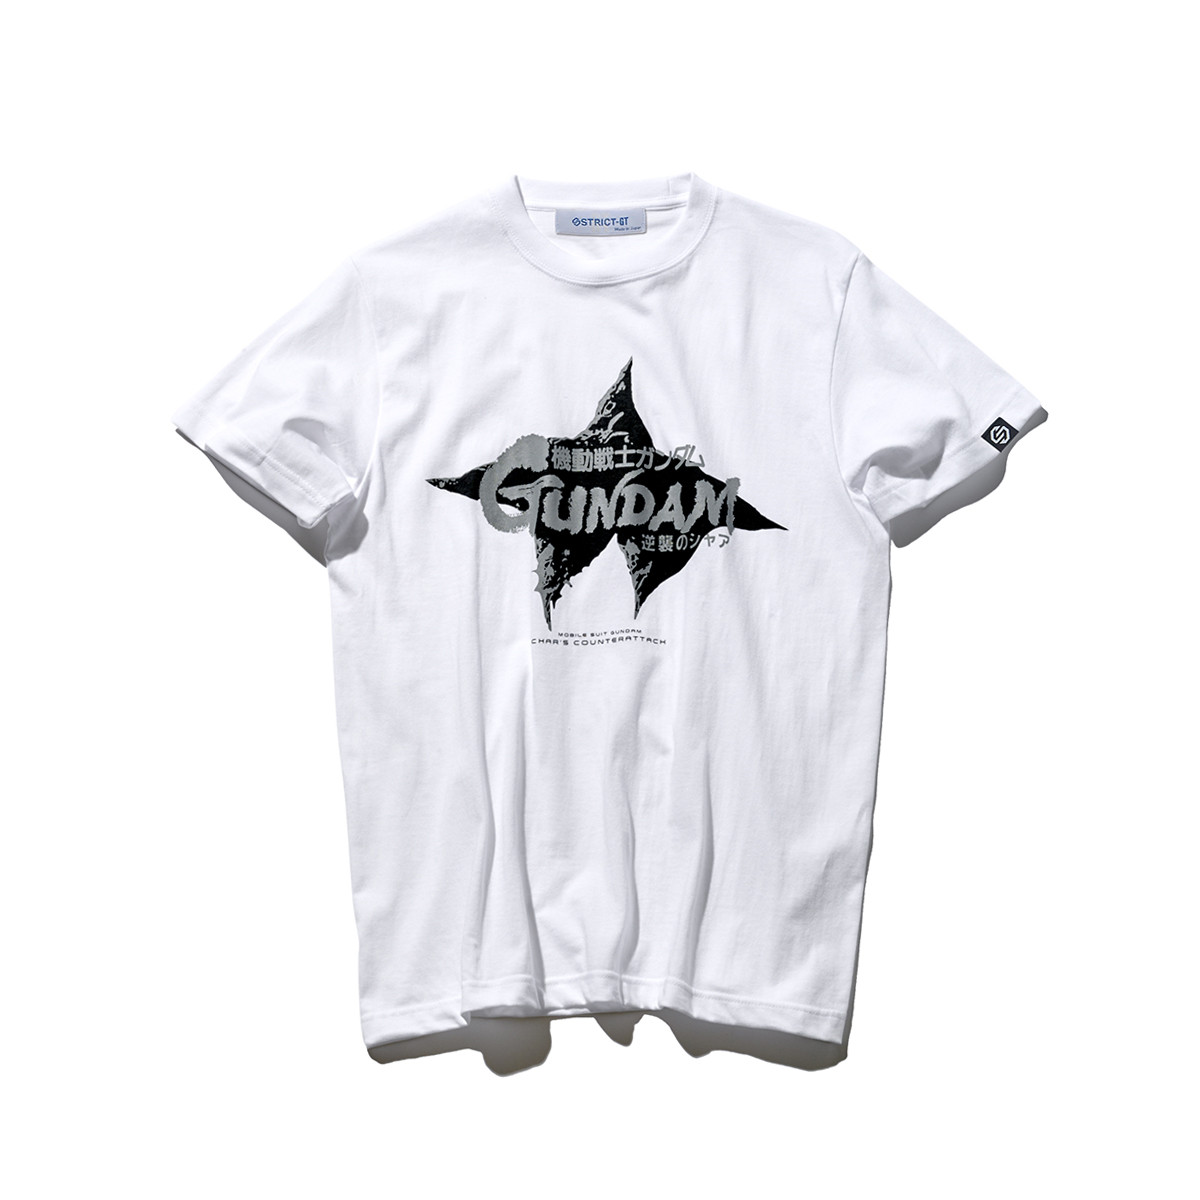 Axis T-shirt—Mobile Suit Gundam: Char's Counterattack